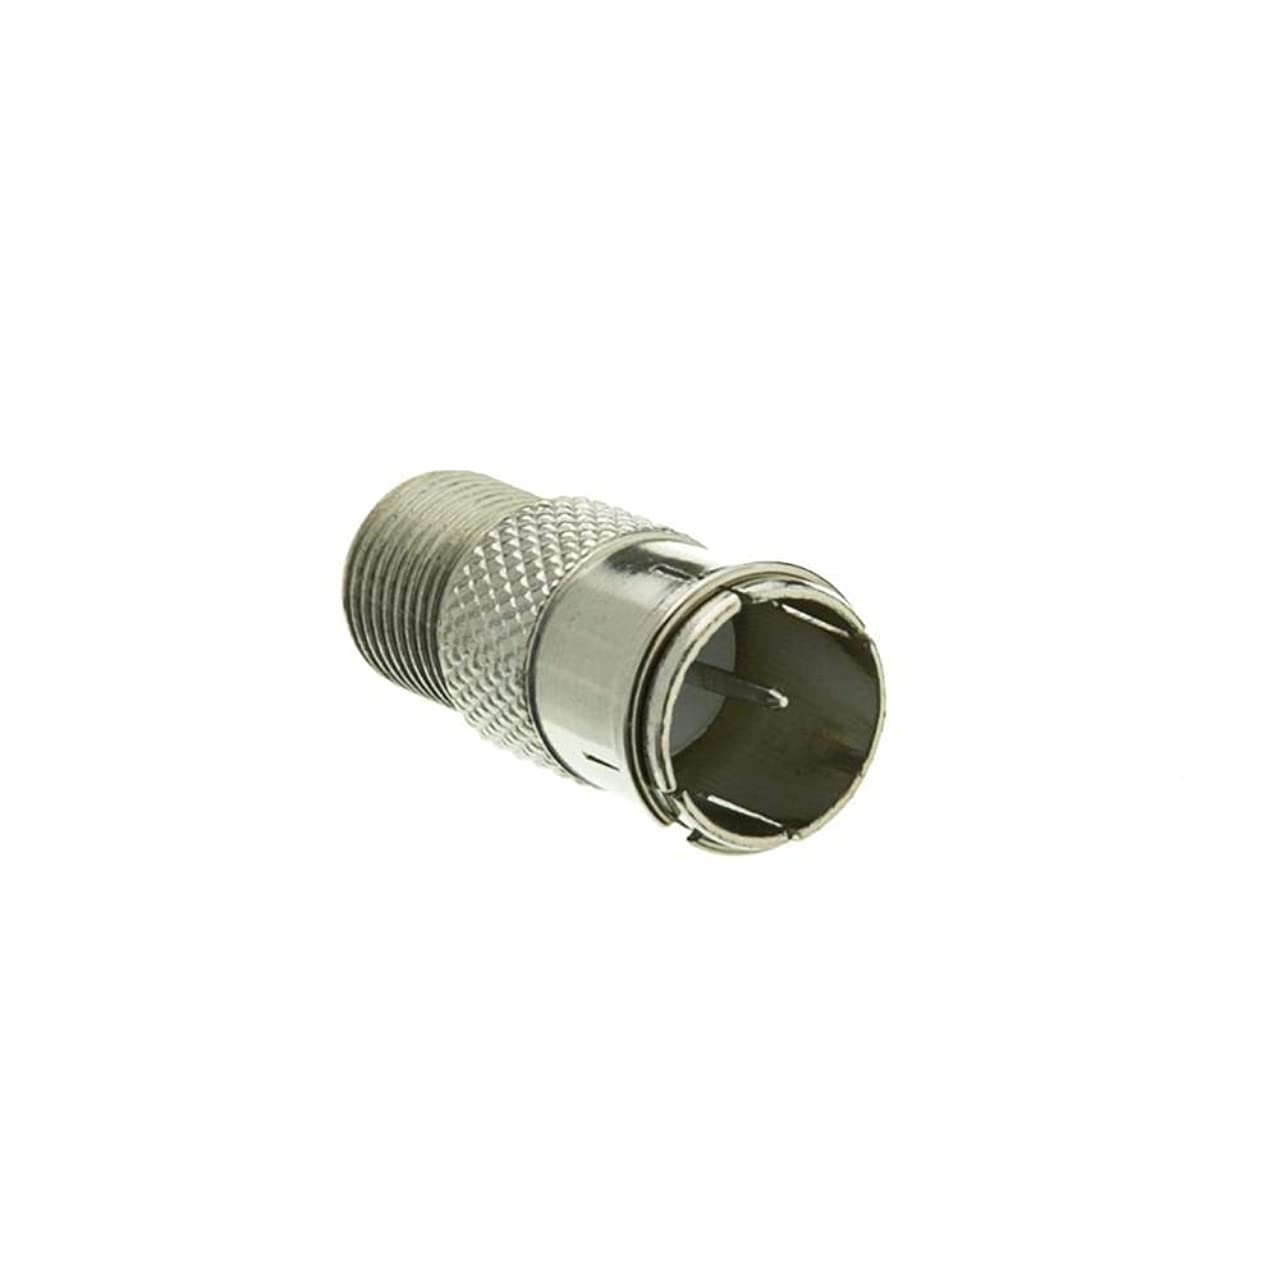 GOWOS F-pin Coaxial Quick Connect Adapter, Threaded F-pin Female to Quick F-pin Male